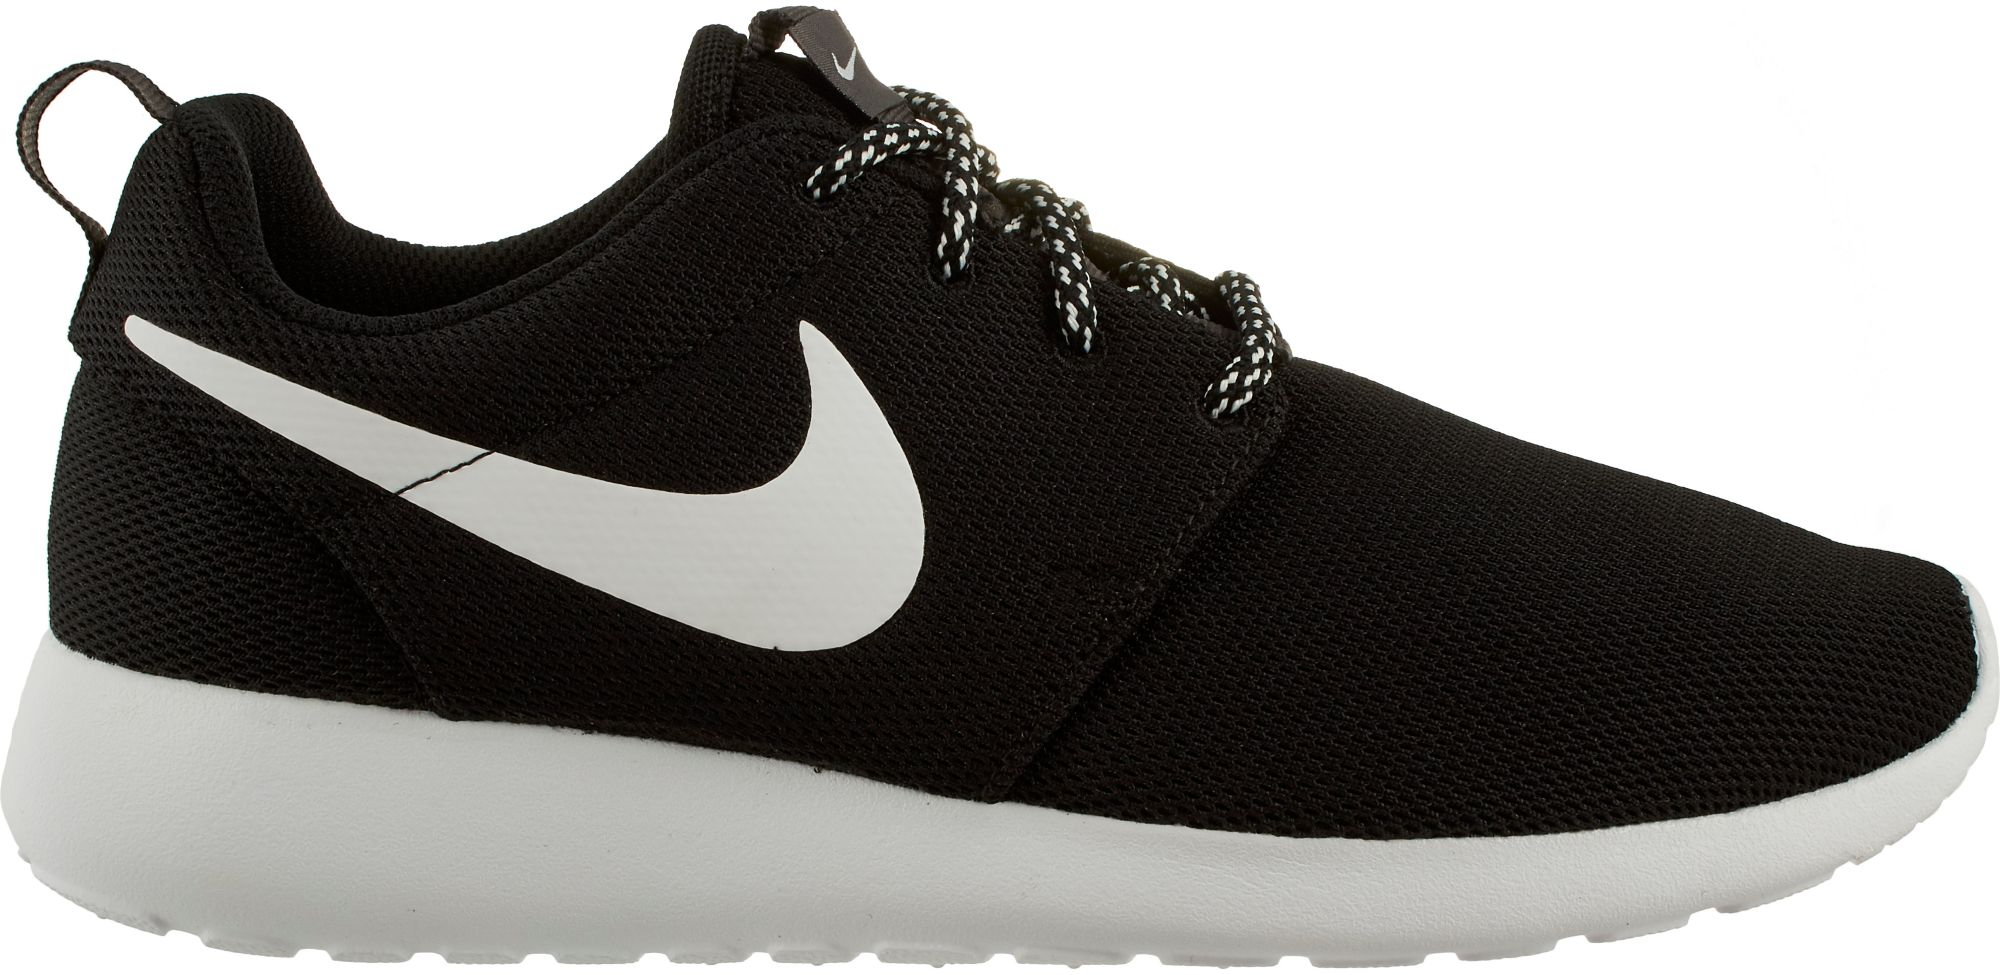 f254e4c5d4f8 ... france nike womens roshe one shoes dicks sporting goods b6bf9 6e5b0 ...